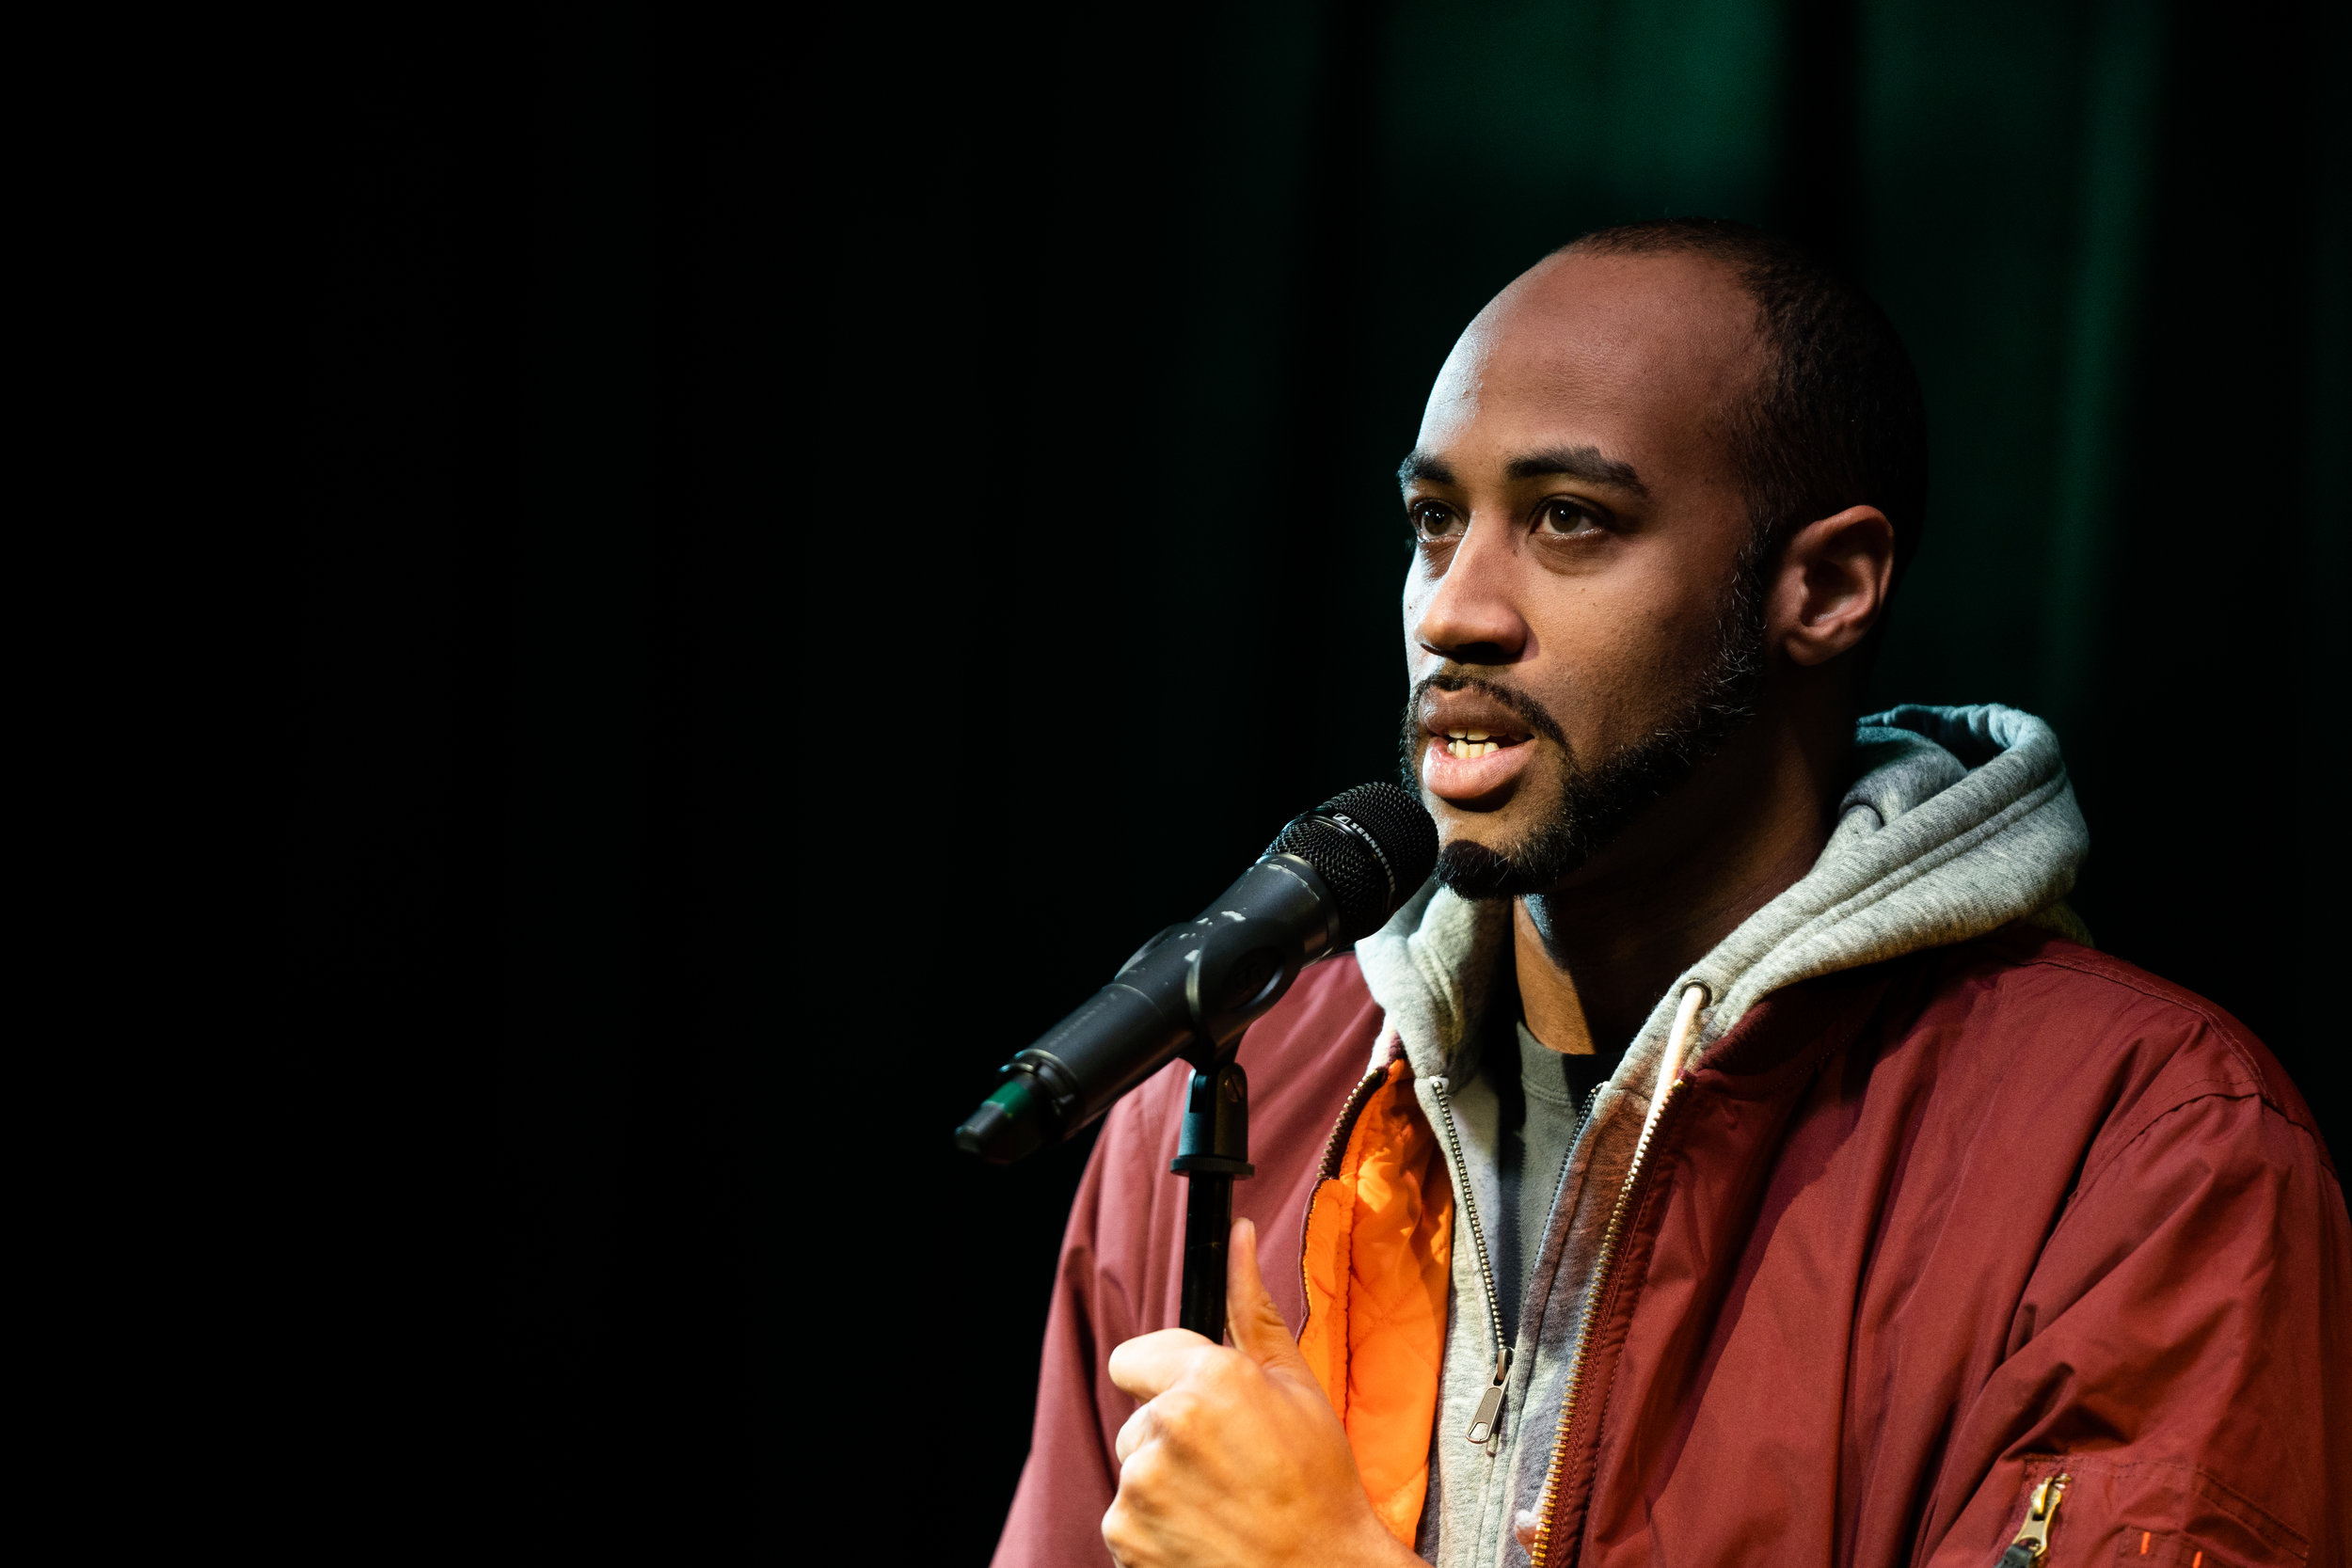 Mike Brown shares his story with The Story Collider at Caveat in NYC in February 2019. Photo by Zhen Qin.